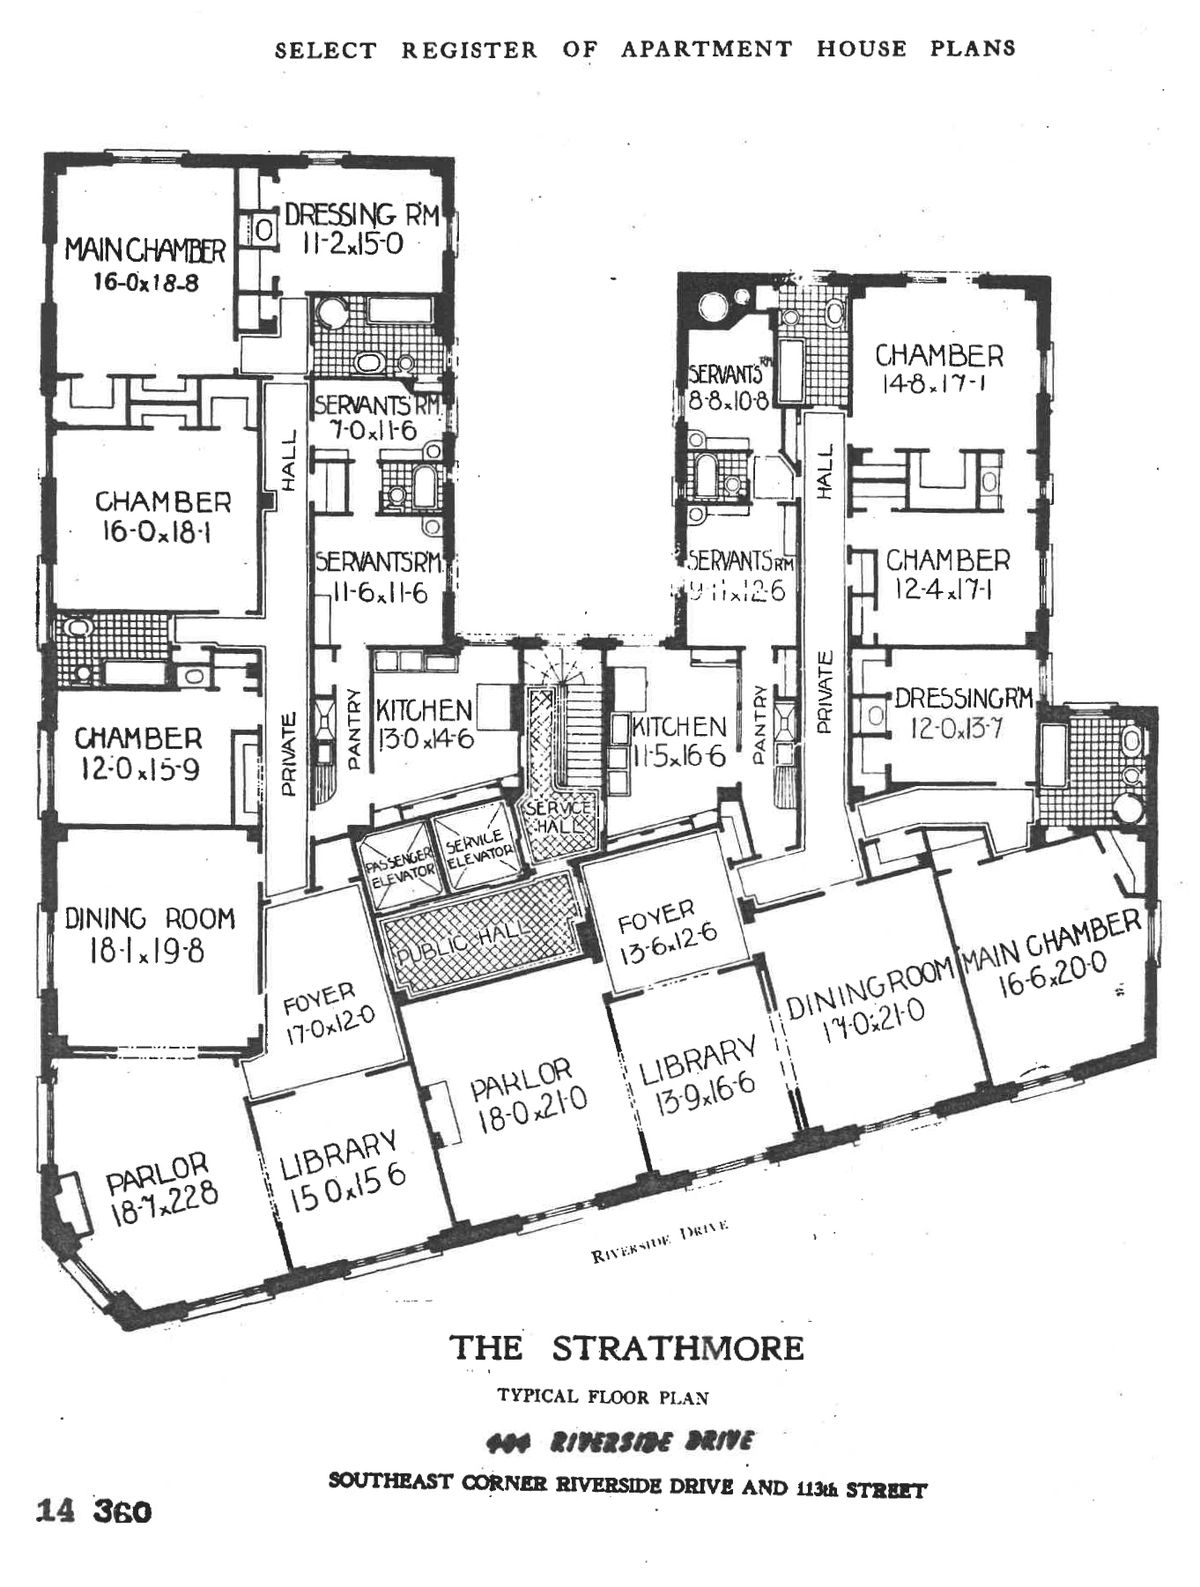 Floor plan showing an entire floor of an apartment building.